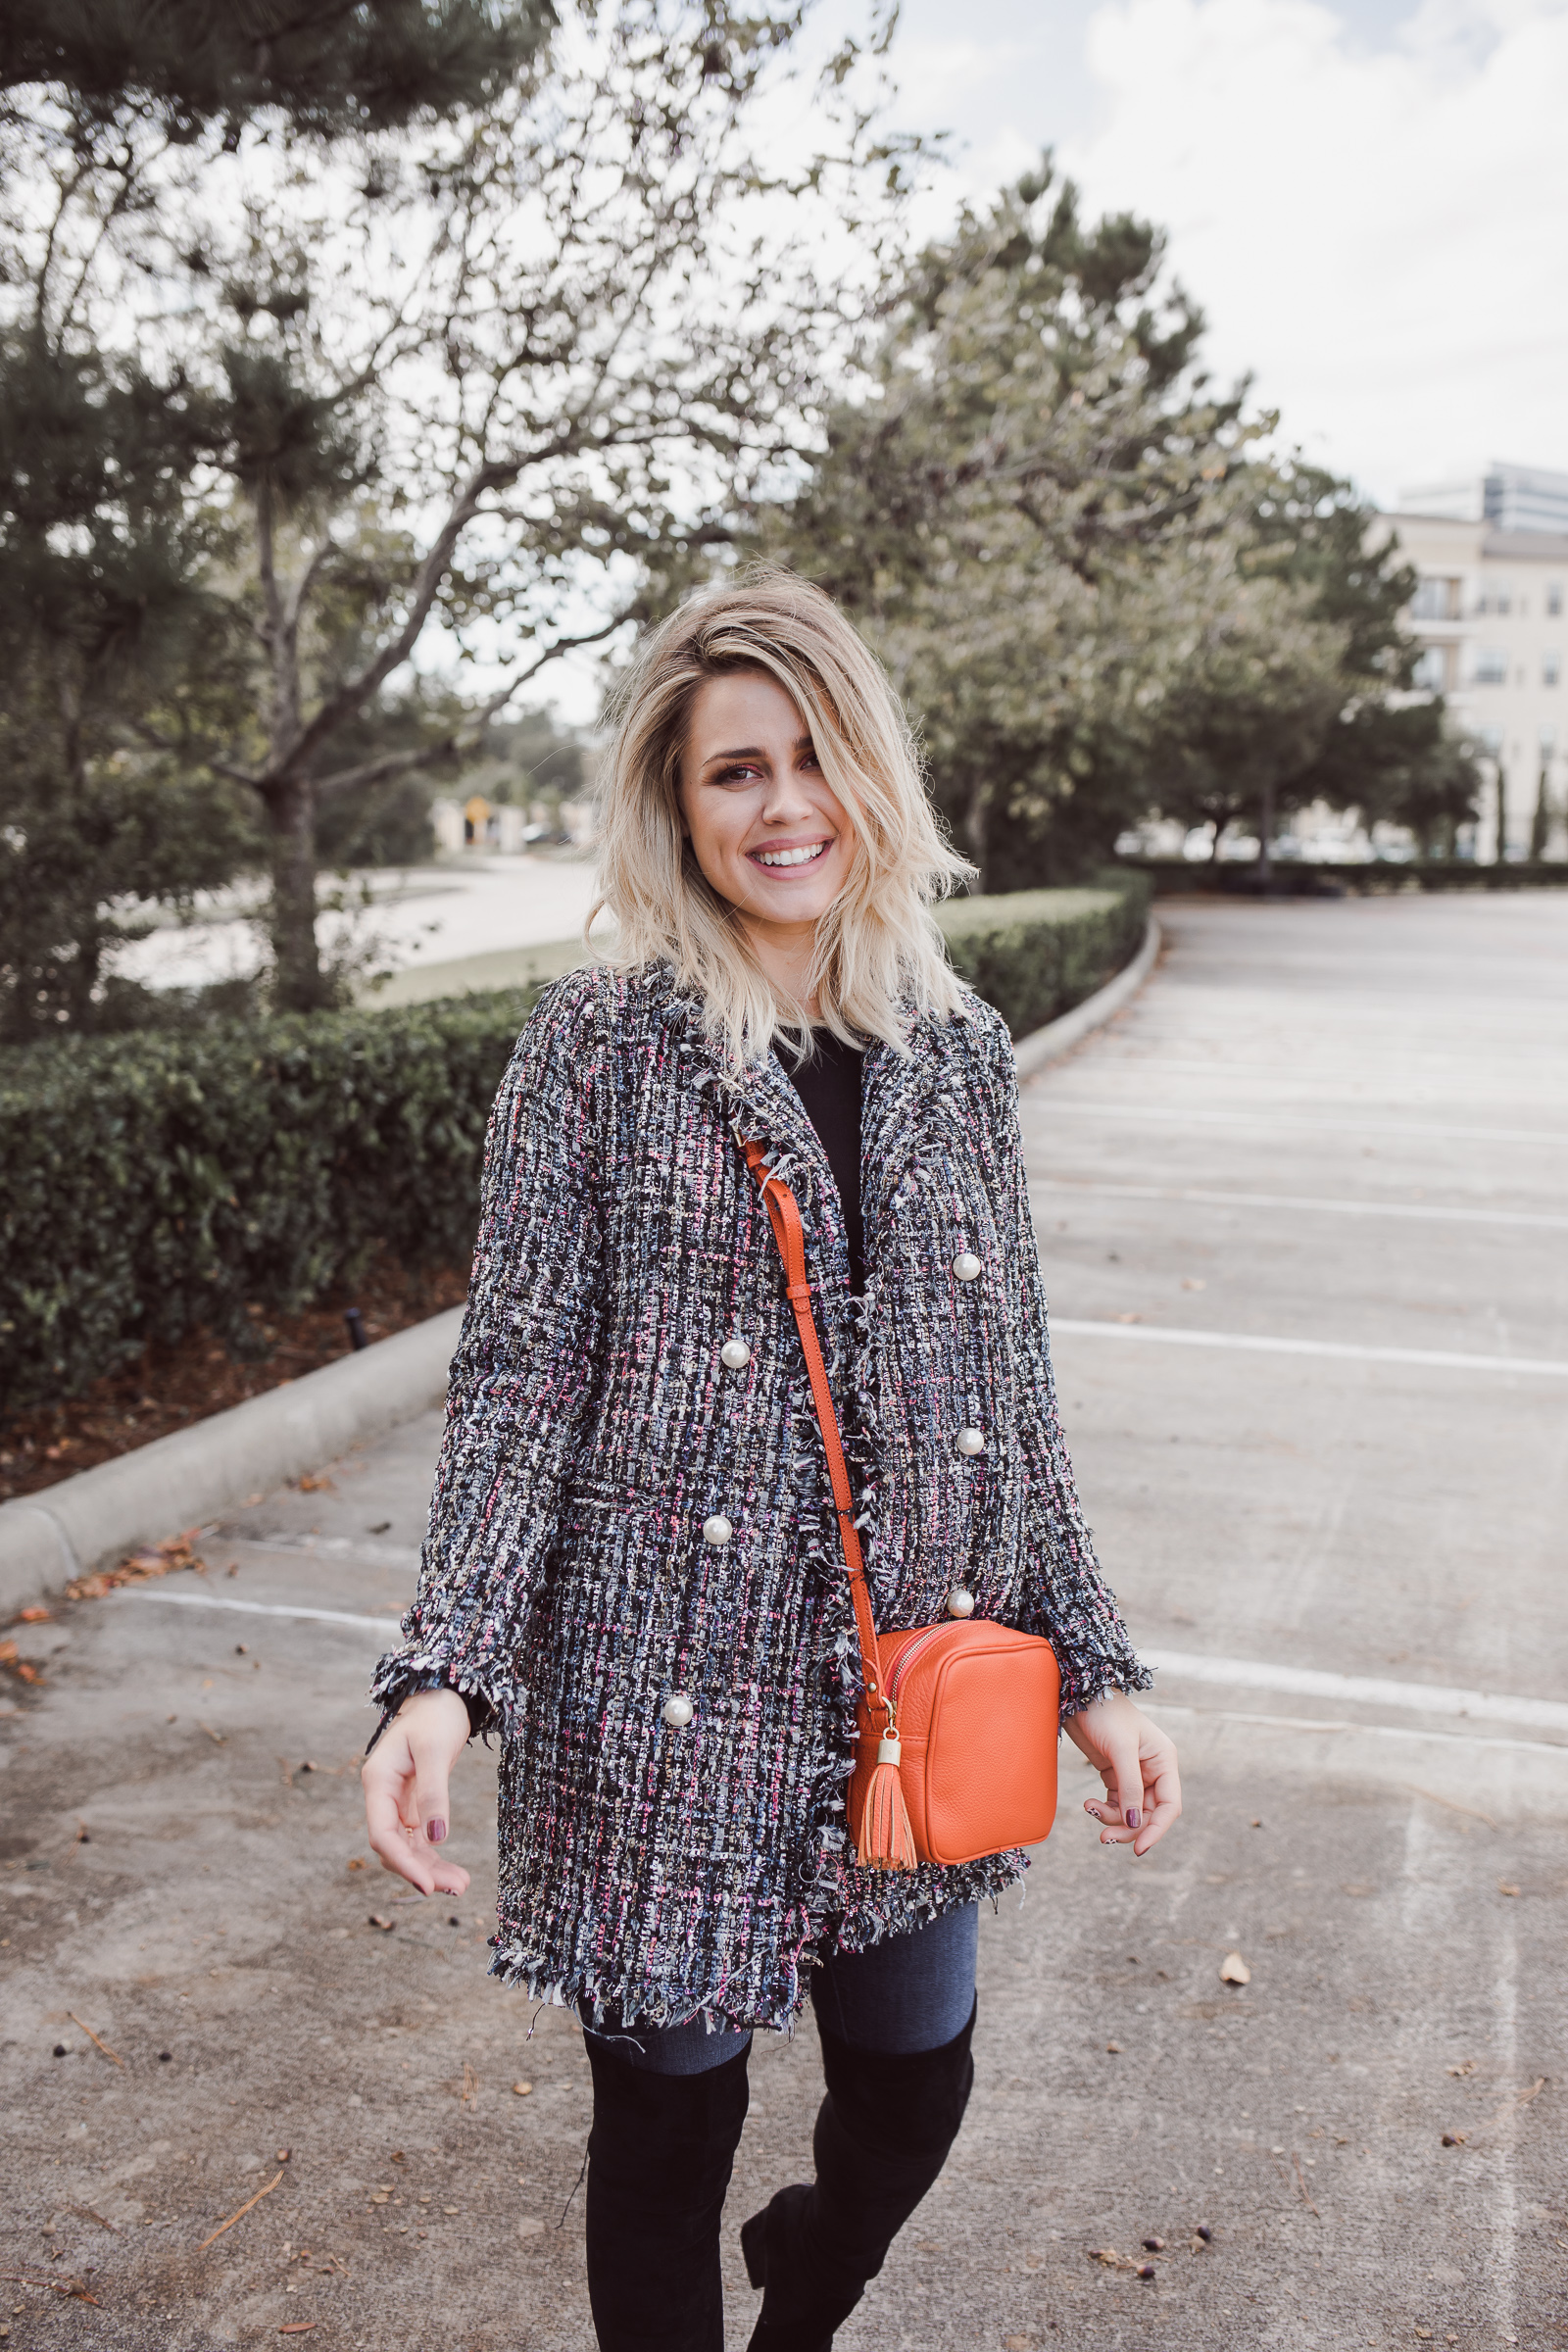 Houston fashion blogger Uptown with Elly Brown wears a Tweed Jacket casually with denim.